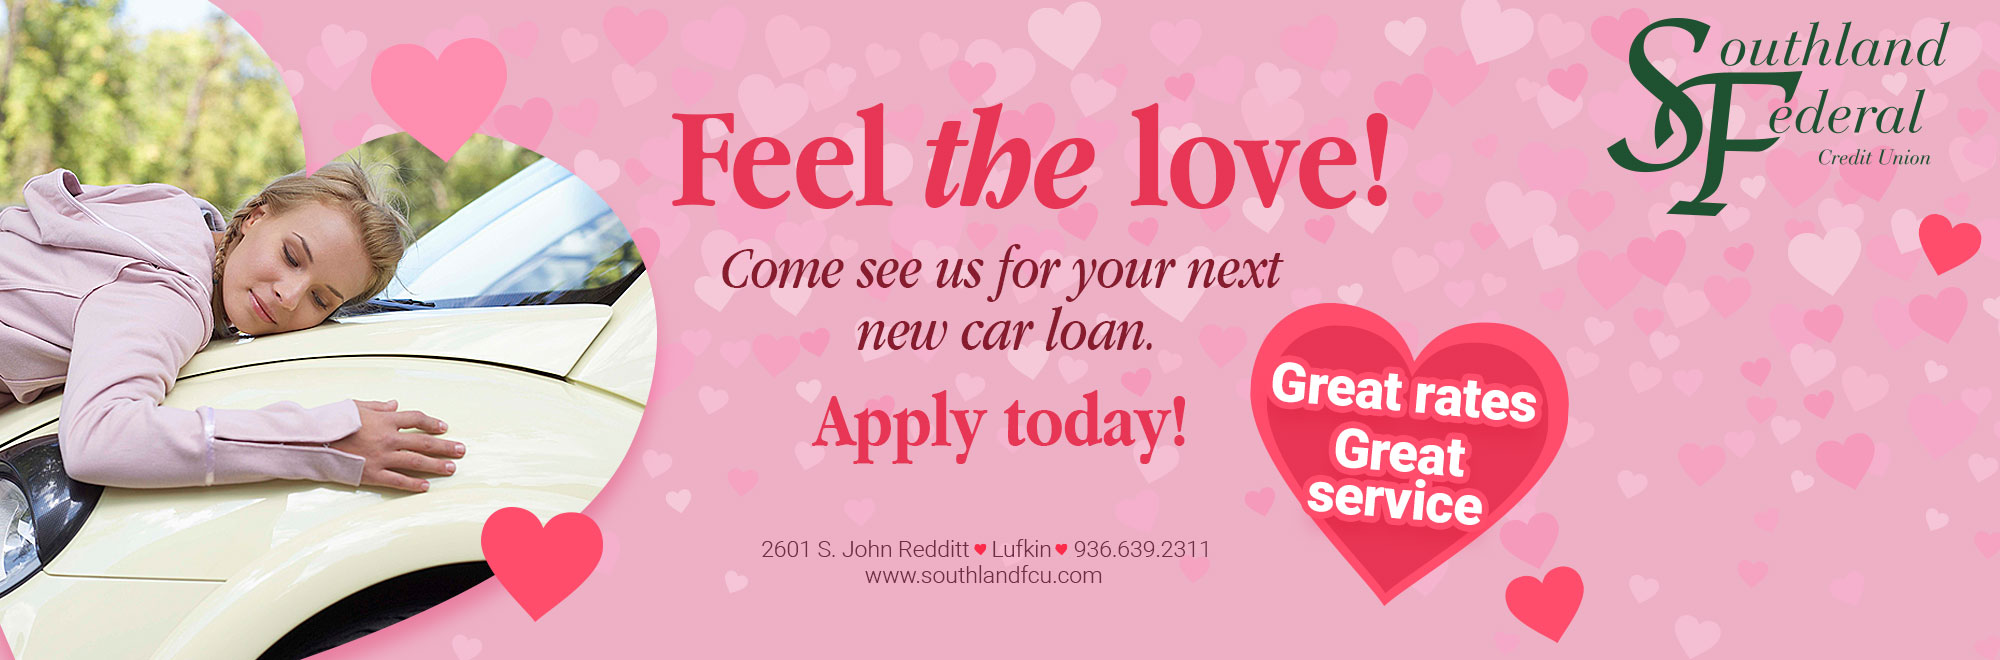 Feel the Love - Apply Today!